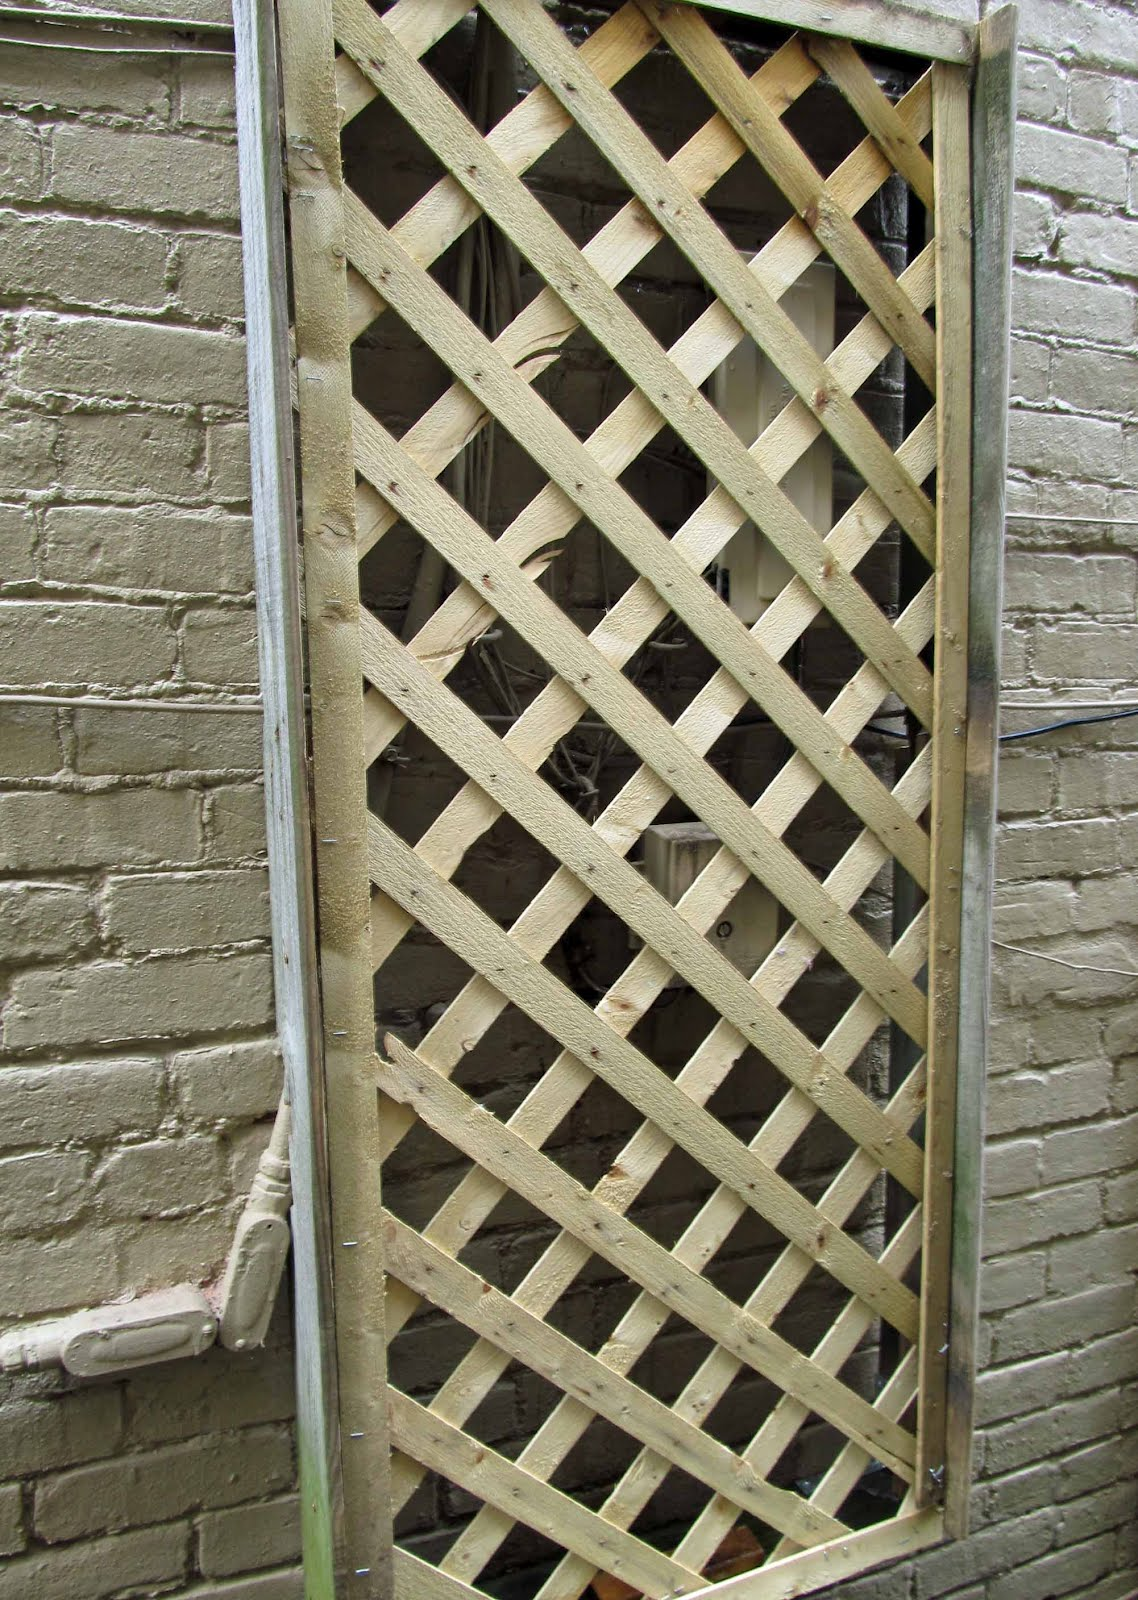 Fence utility box cover fence free engine image for user manual download